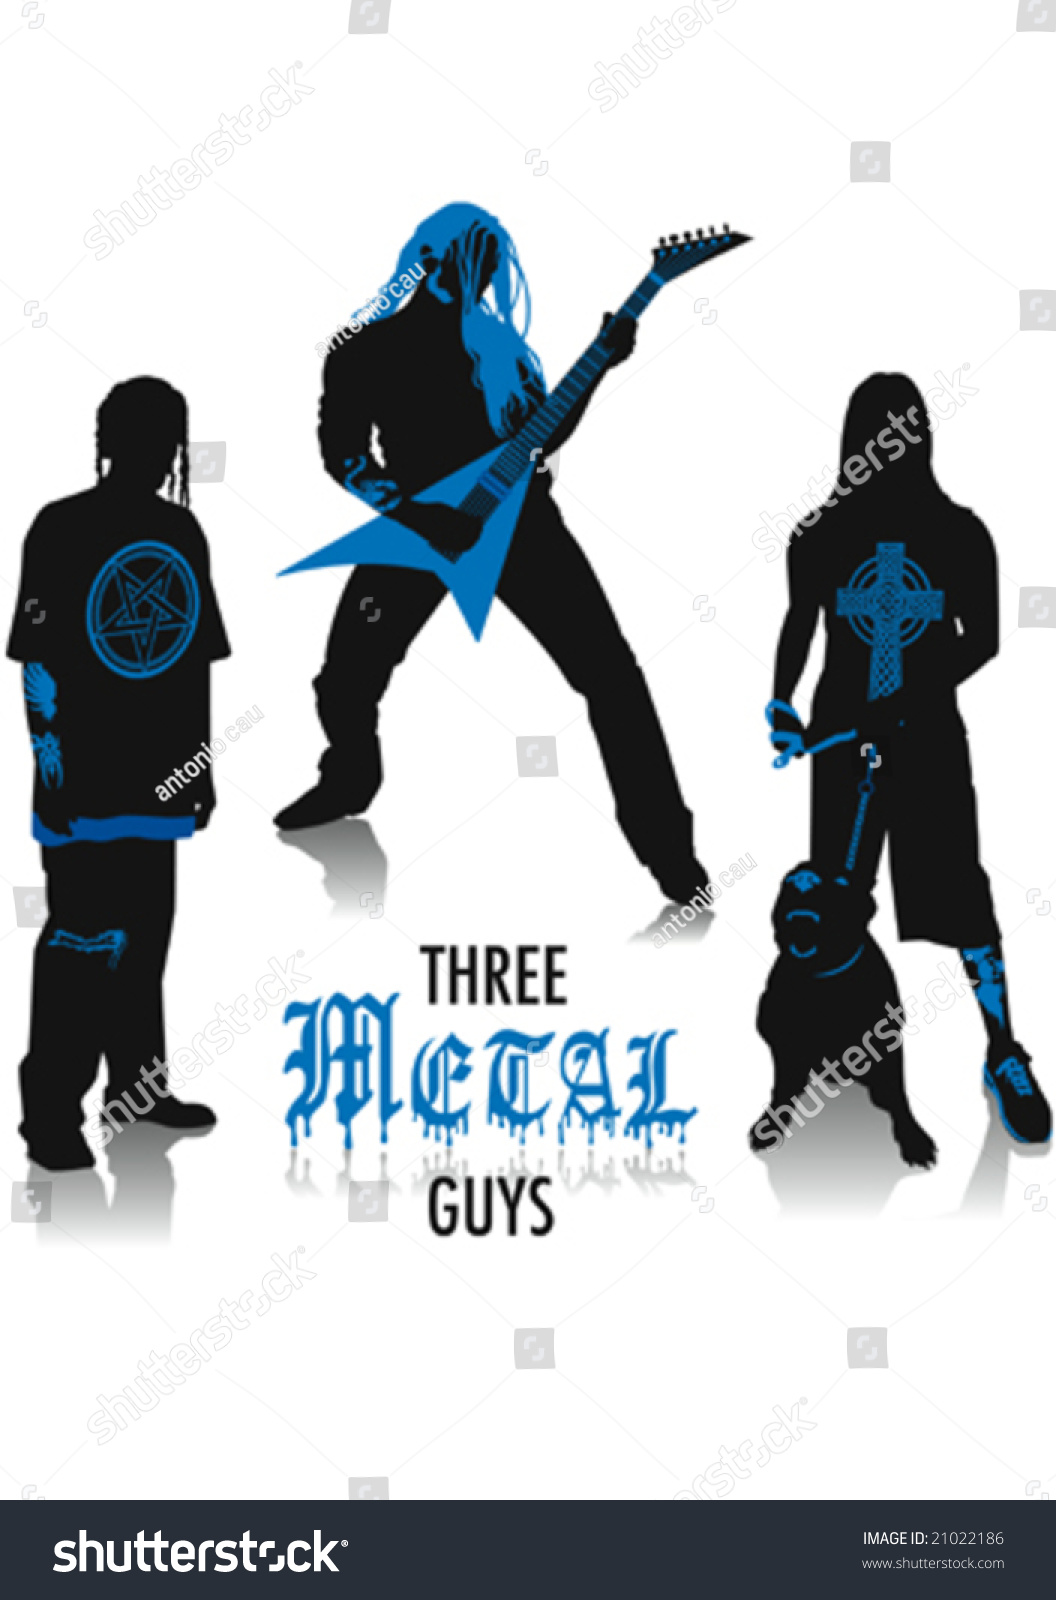 Two-Tone Silhouettes Of Three Heavy-Metal Guys, Part Of A ...